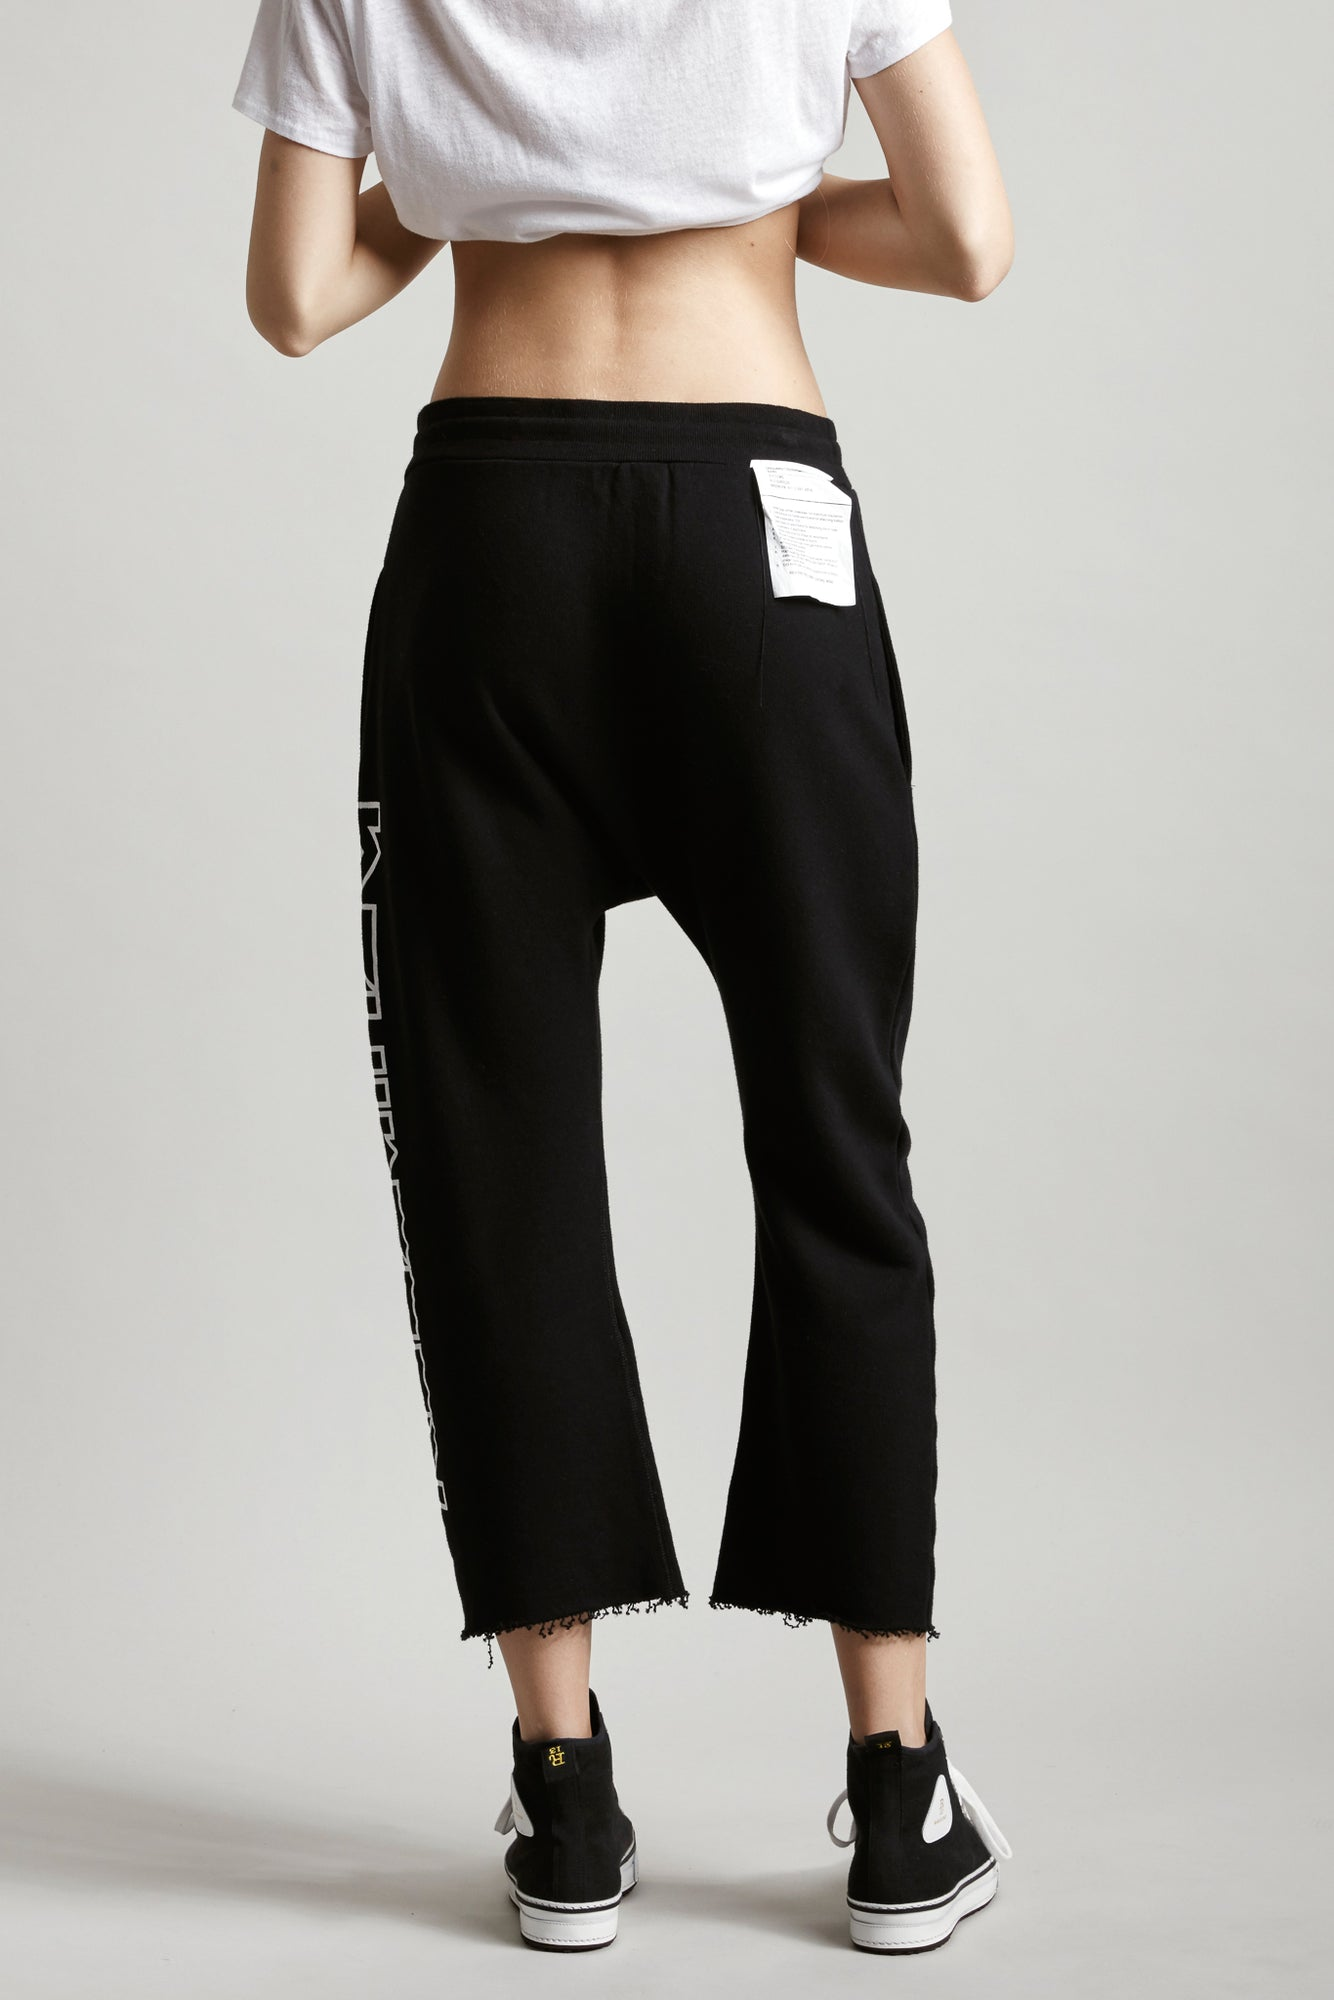 RThirteen Sweatpants - Black